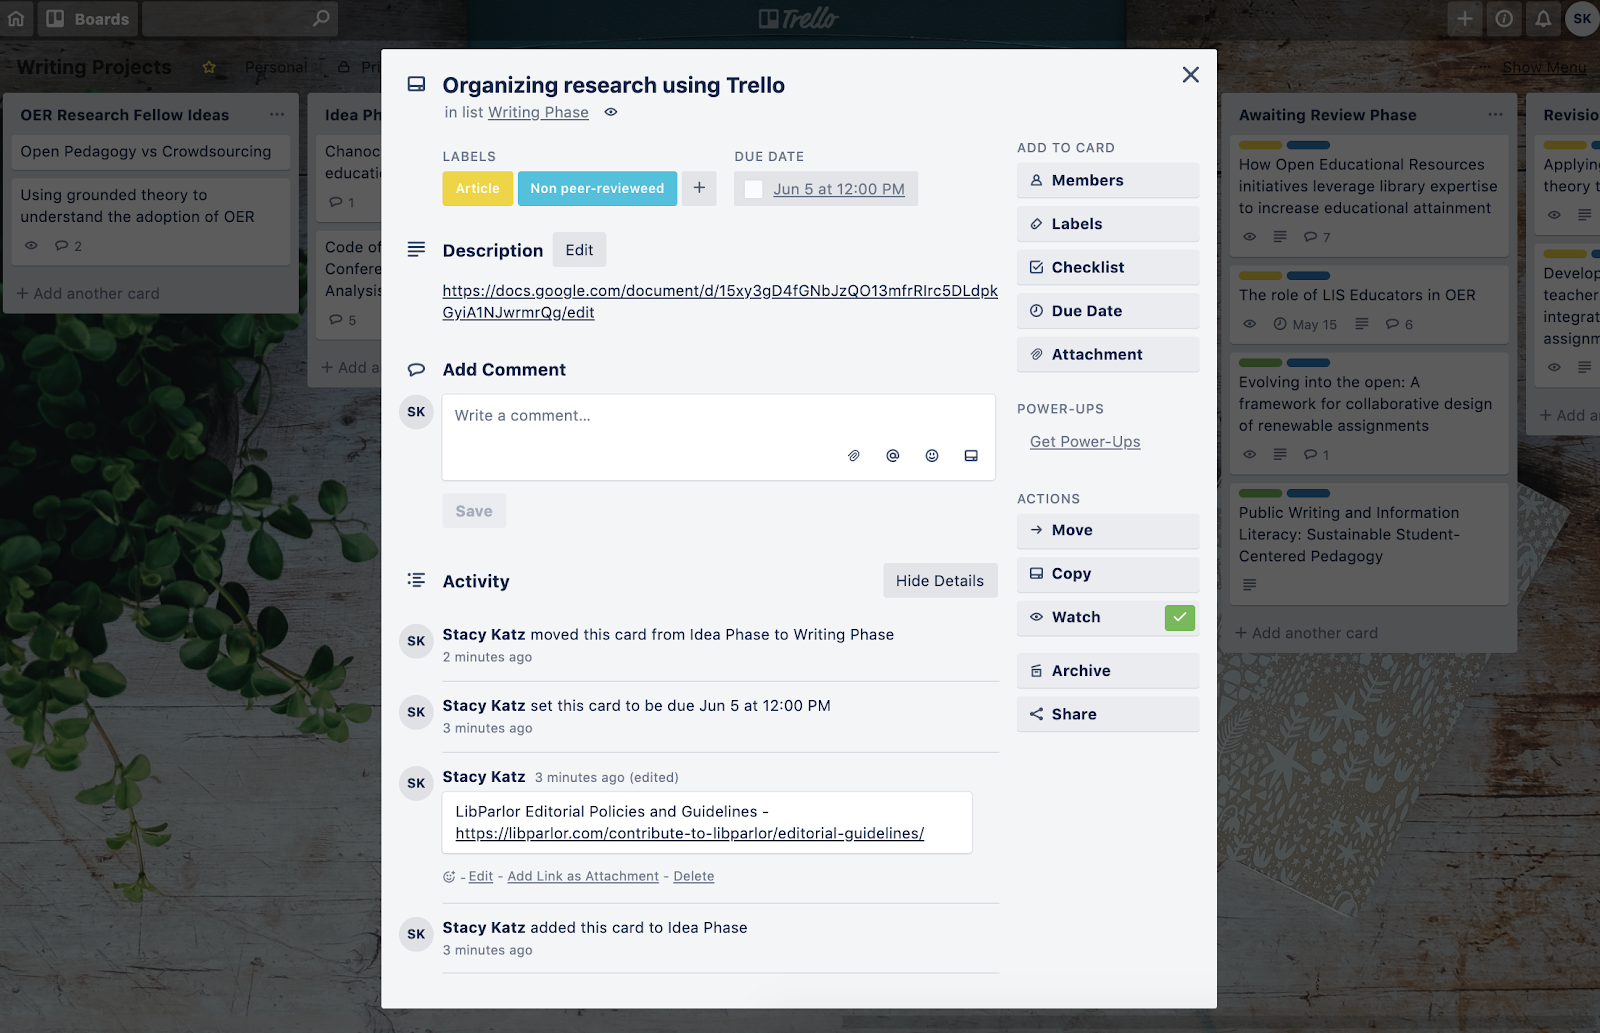 A screenshot of a Trello card with labels, the description, and activity.